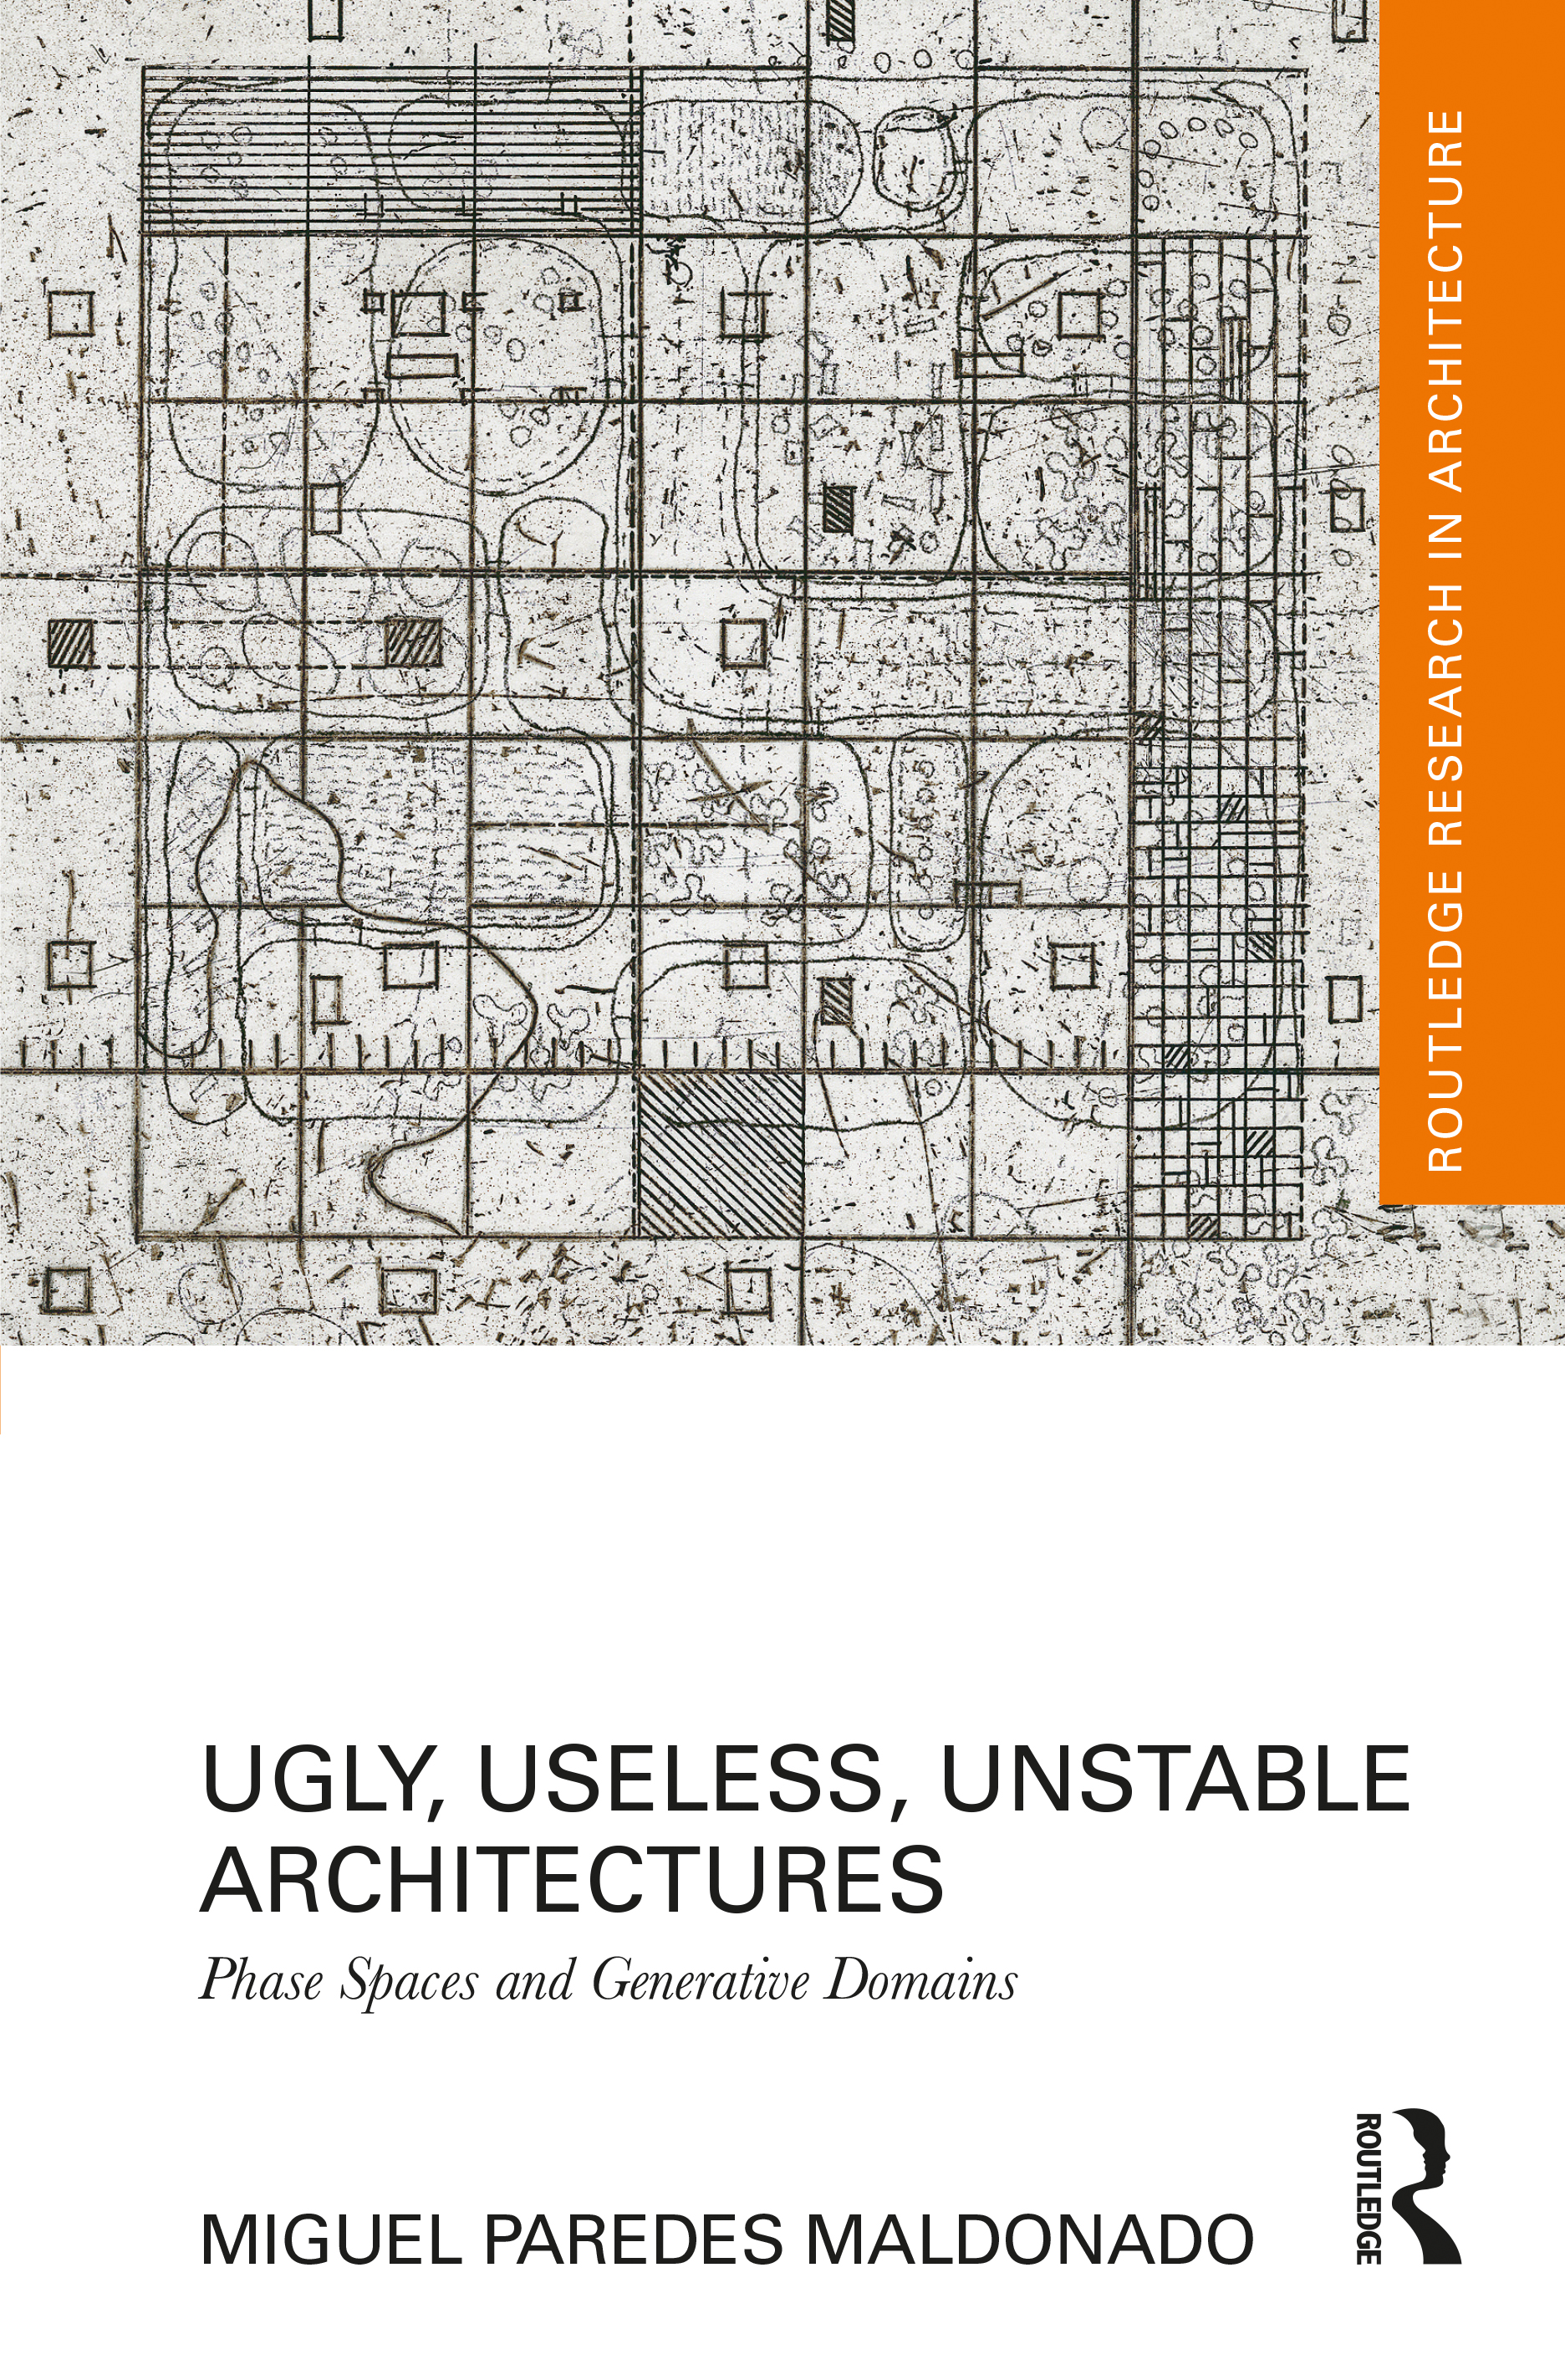 Ugly, Useless, Unstable Architectures: Phase Spaces and Generative Domains book cover